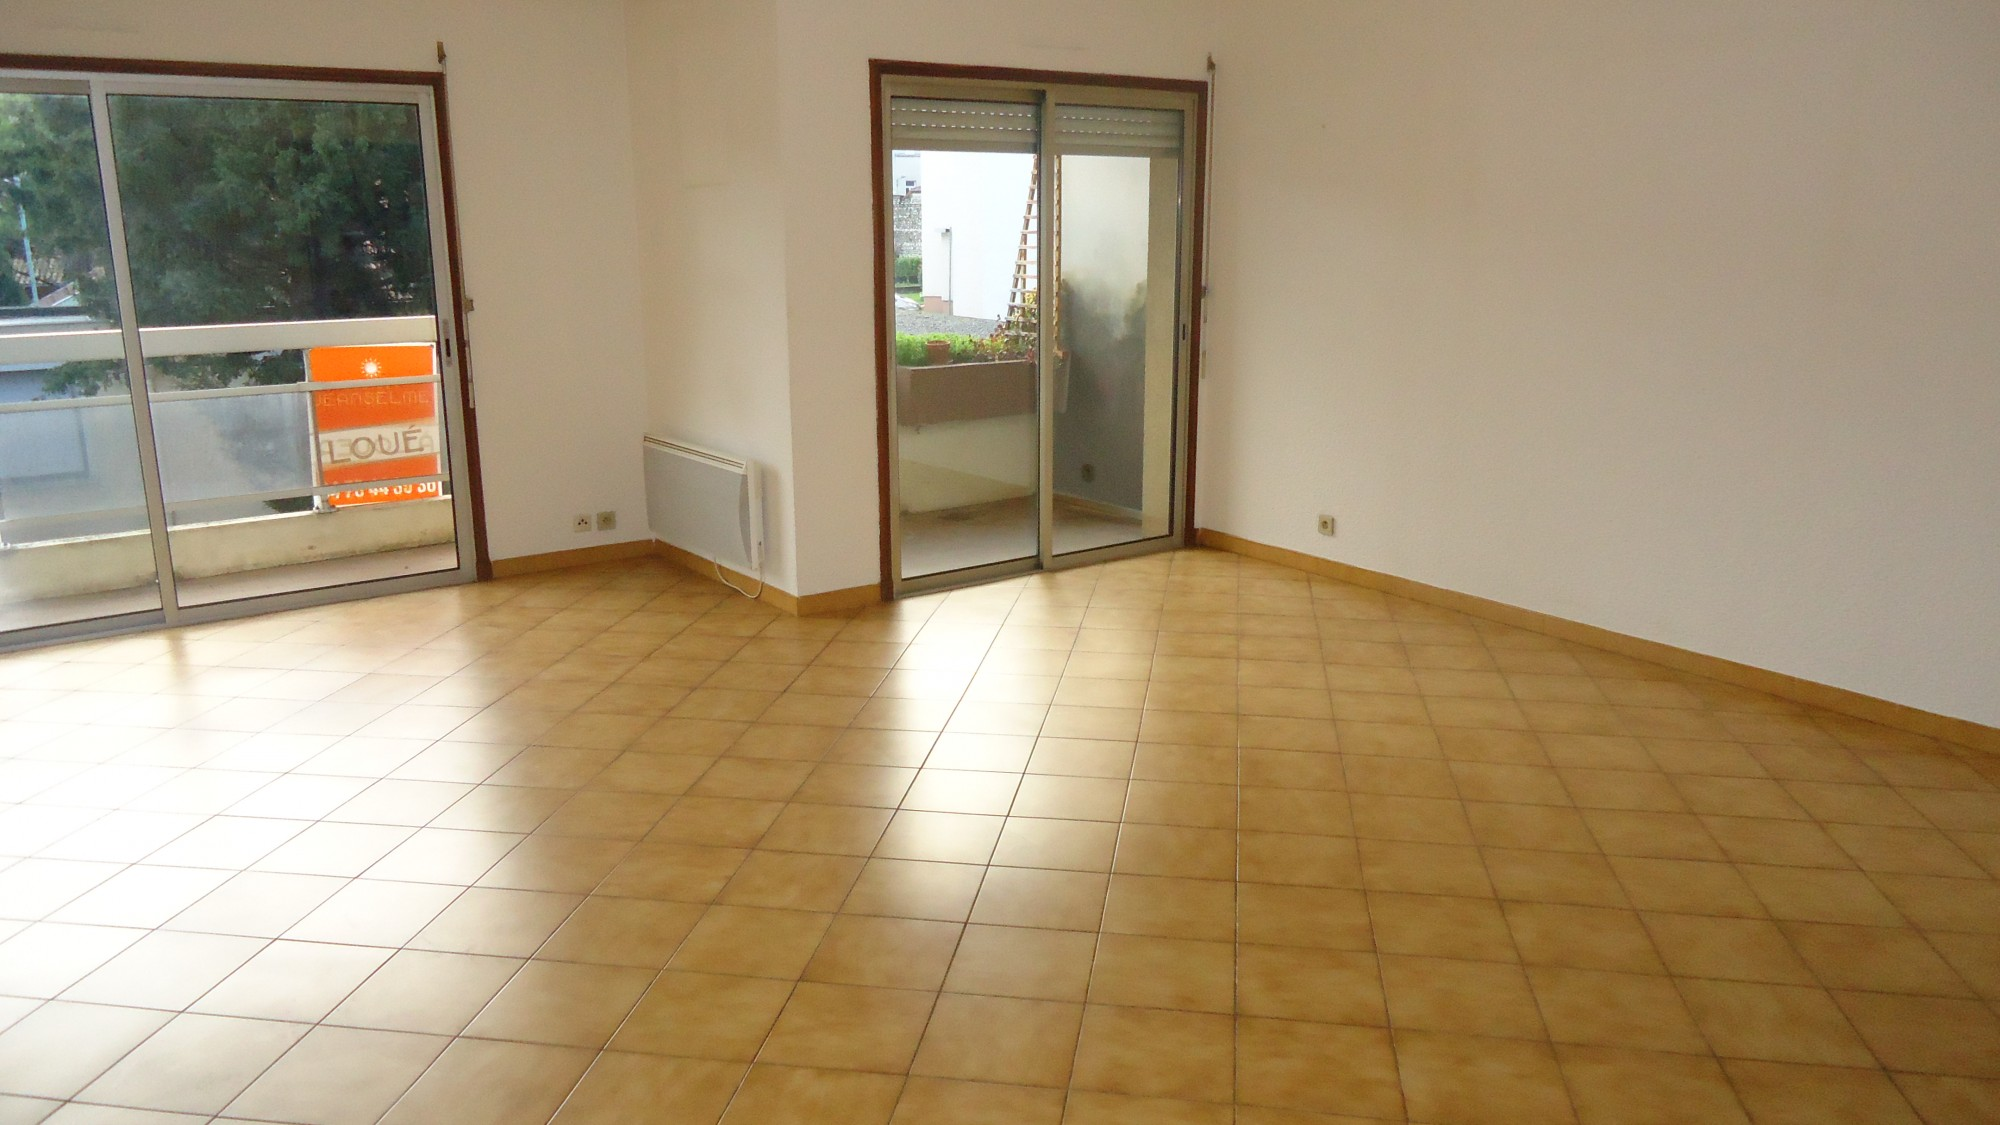 Bourg les valence appartement 80 m vendre avec garage for Agence immobiliere valence